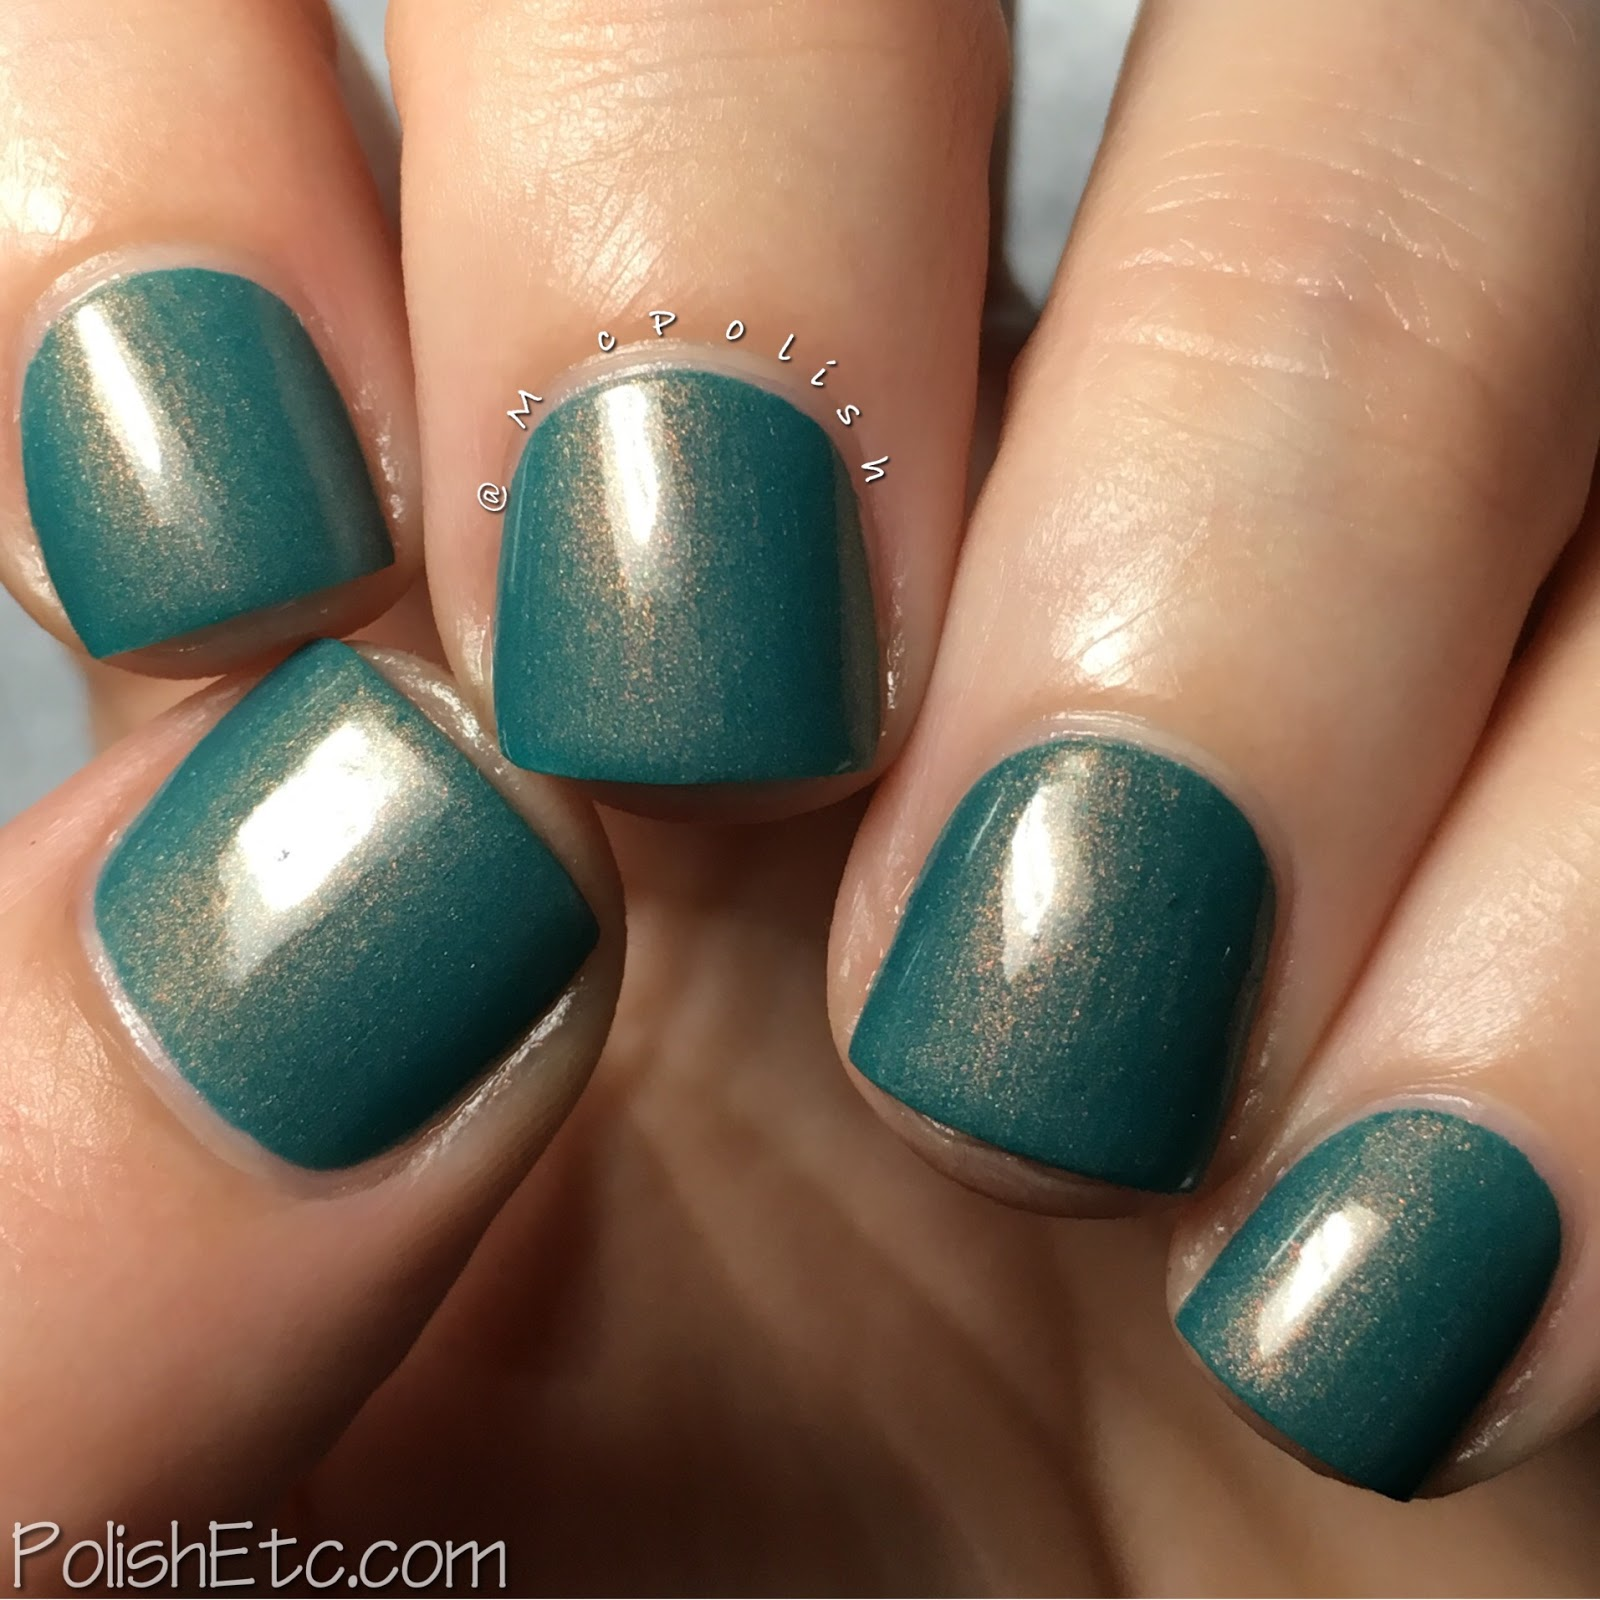 Native War Paints - Copper Penny Collection - McPolish - My Favorite Copper Sweater